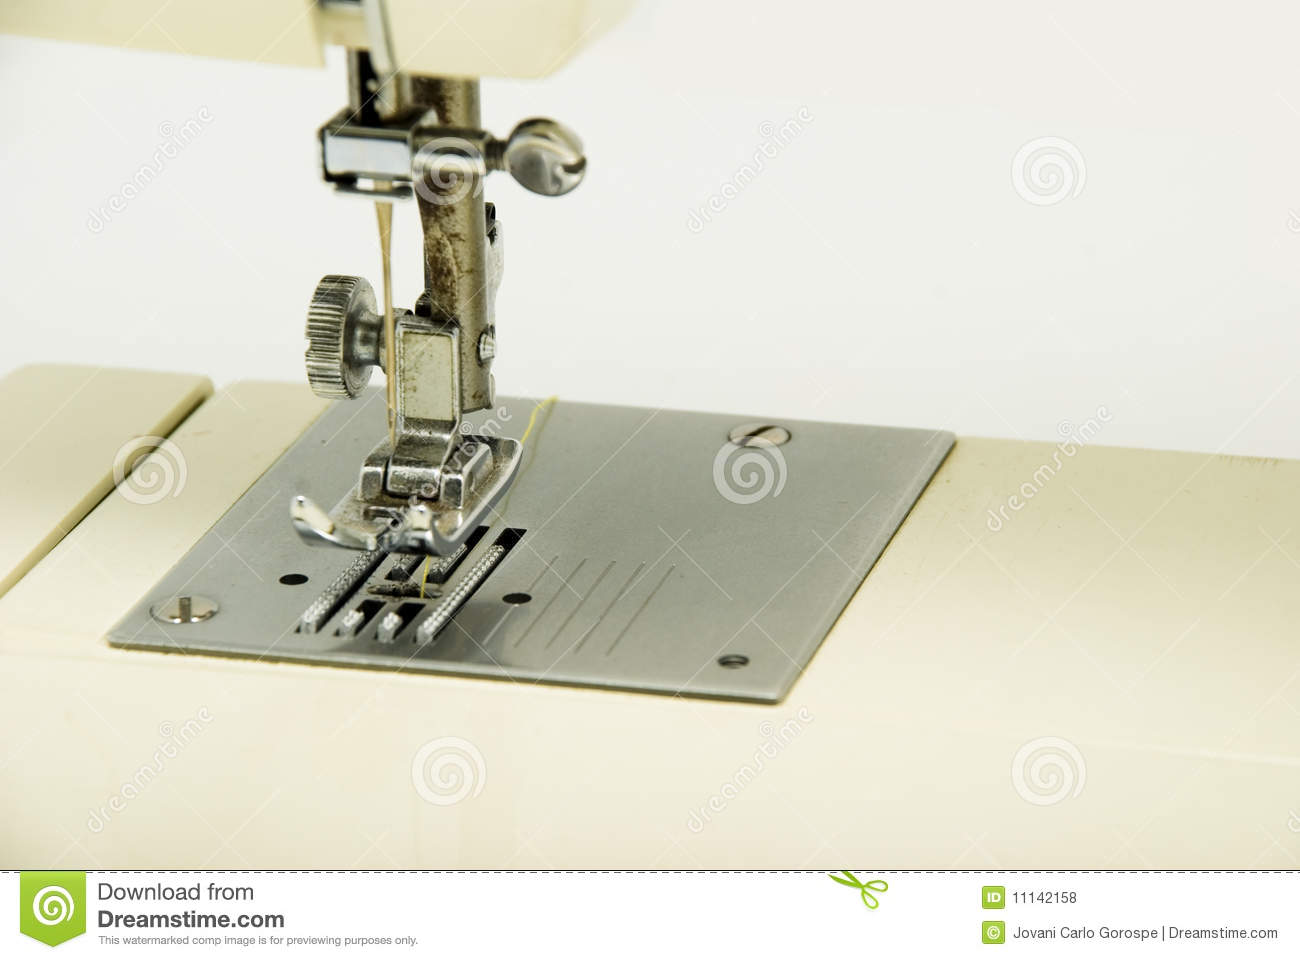 Sewing maching royalty free stock photos image 11142158 for Arts and crafts sewing machine